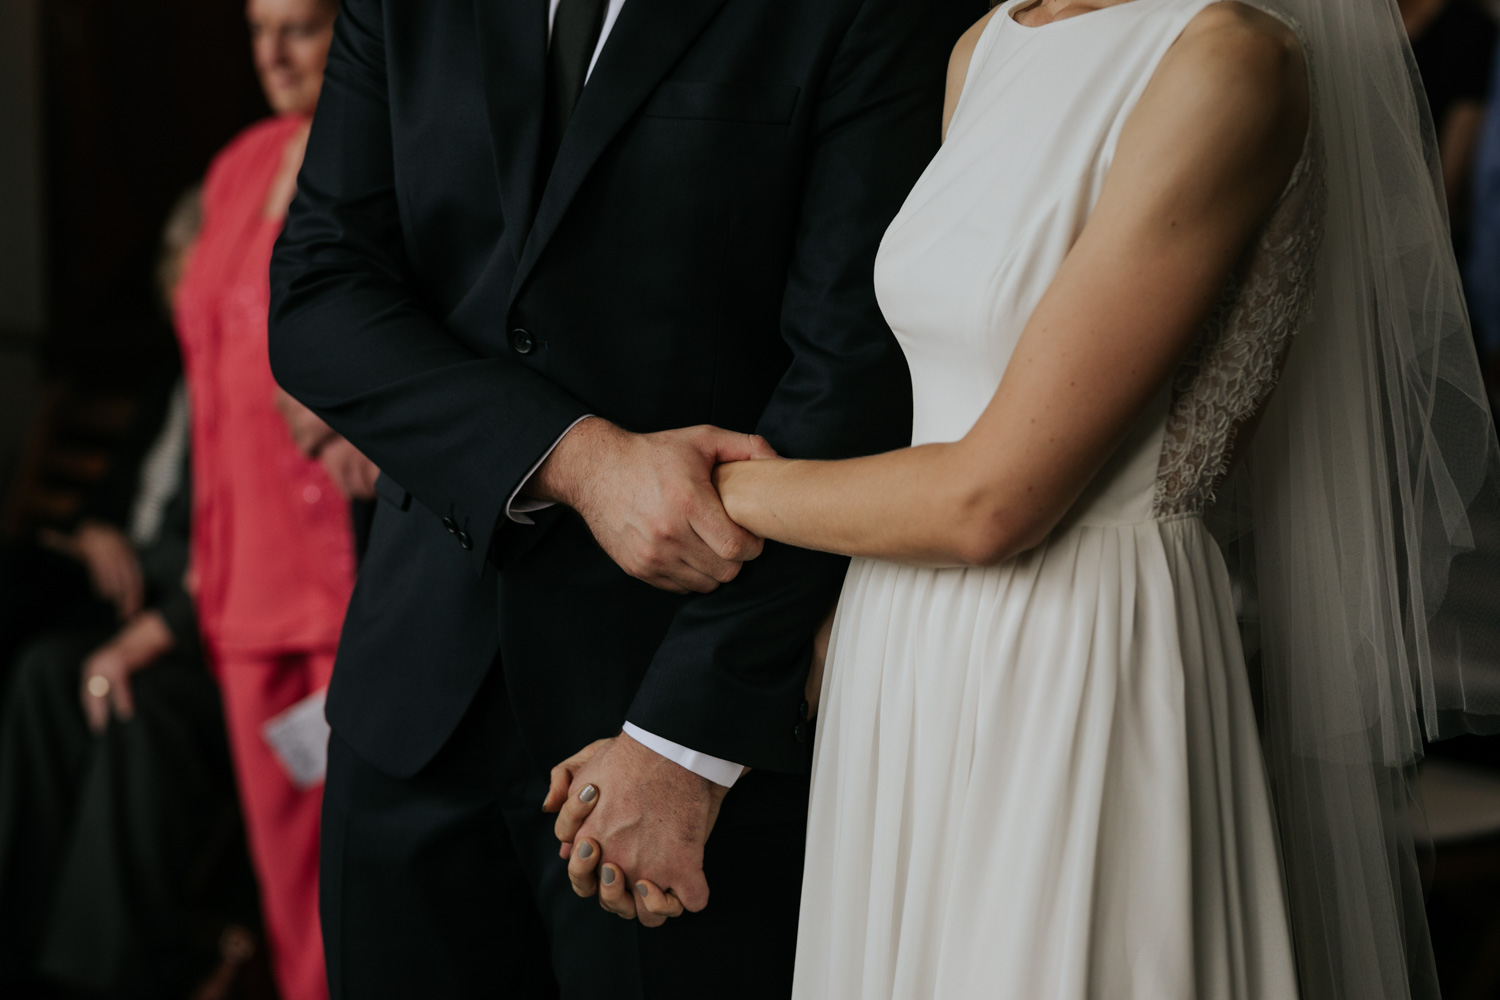 Bride And Groom Hold Hands In Wedding Ceremony